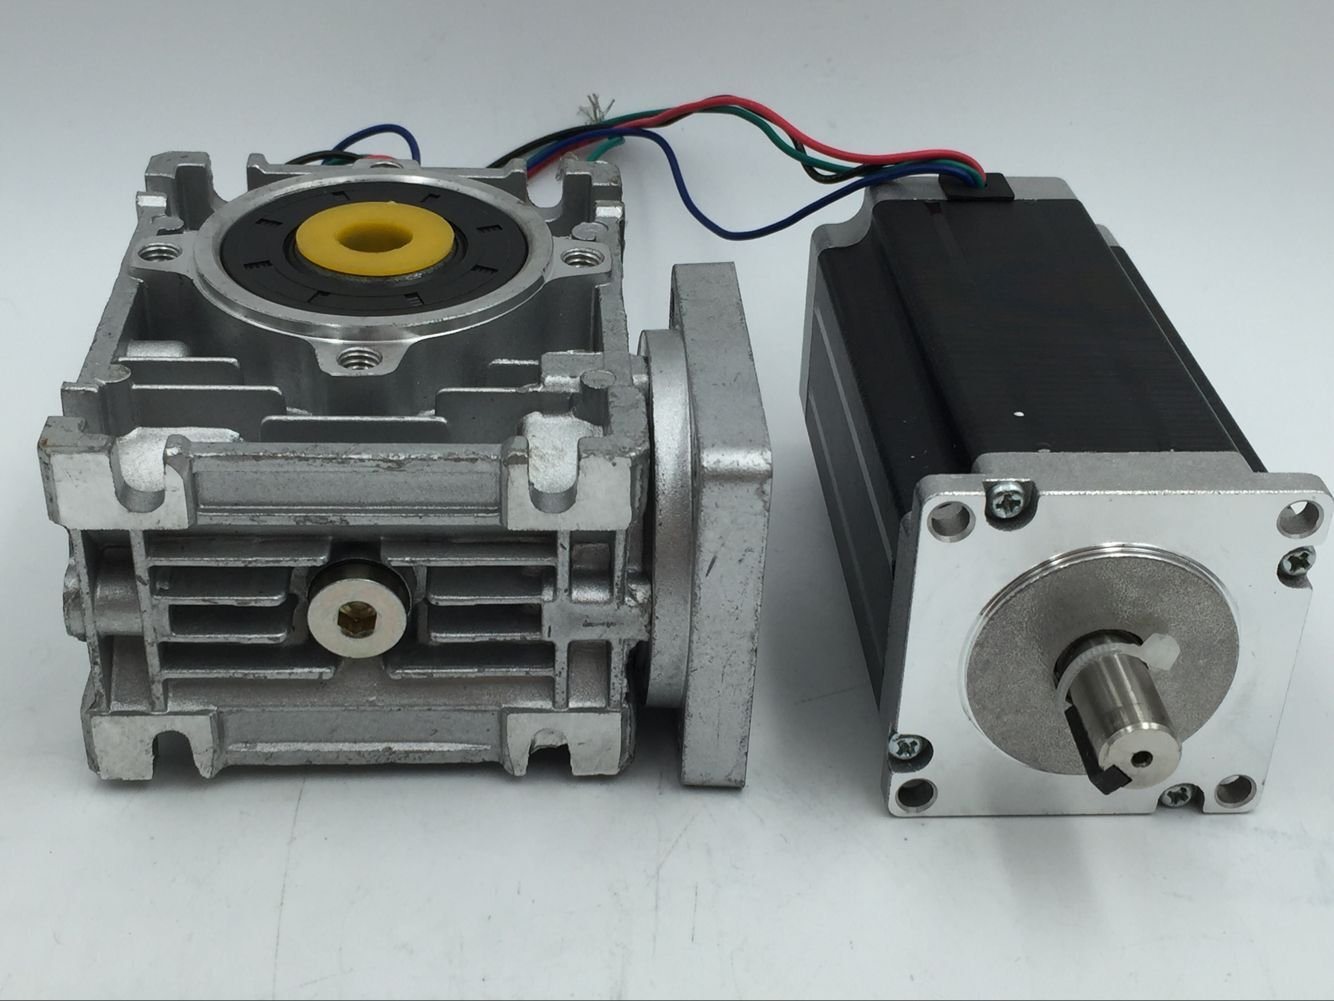 Nema23 Stepper Motor L112mm 3N.m Gear Ratio 10:1 14mm Keyway Shaft Gearbox Speed Reducer CNC DIY Router